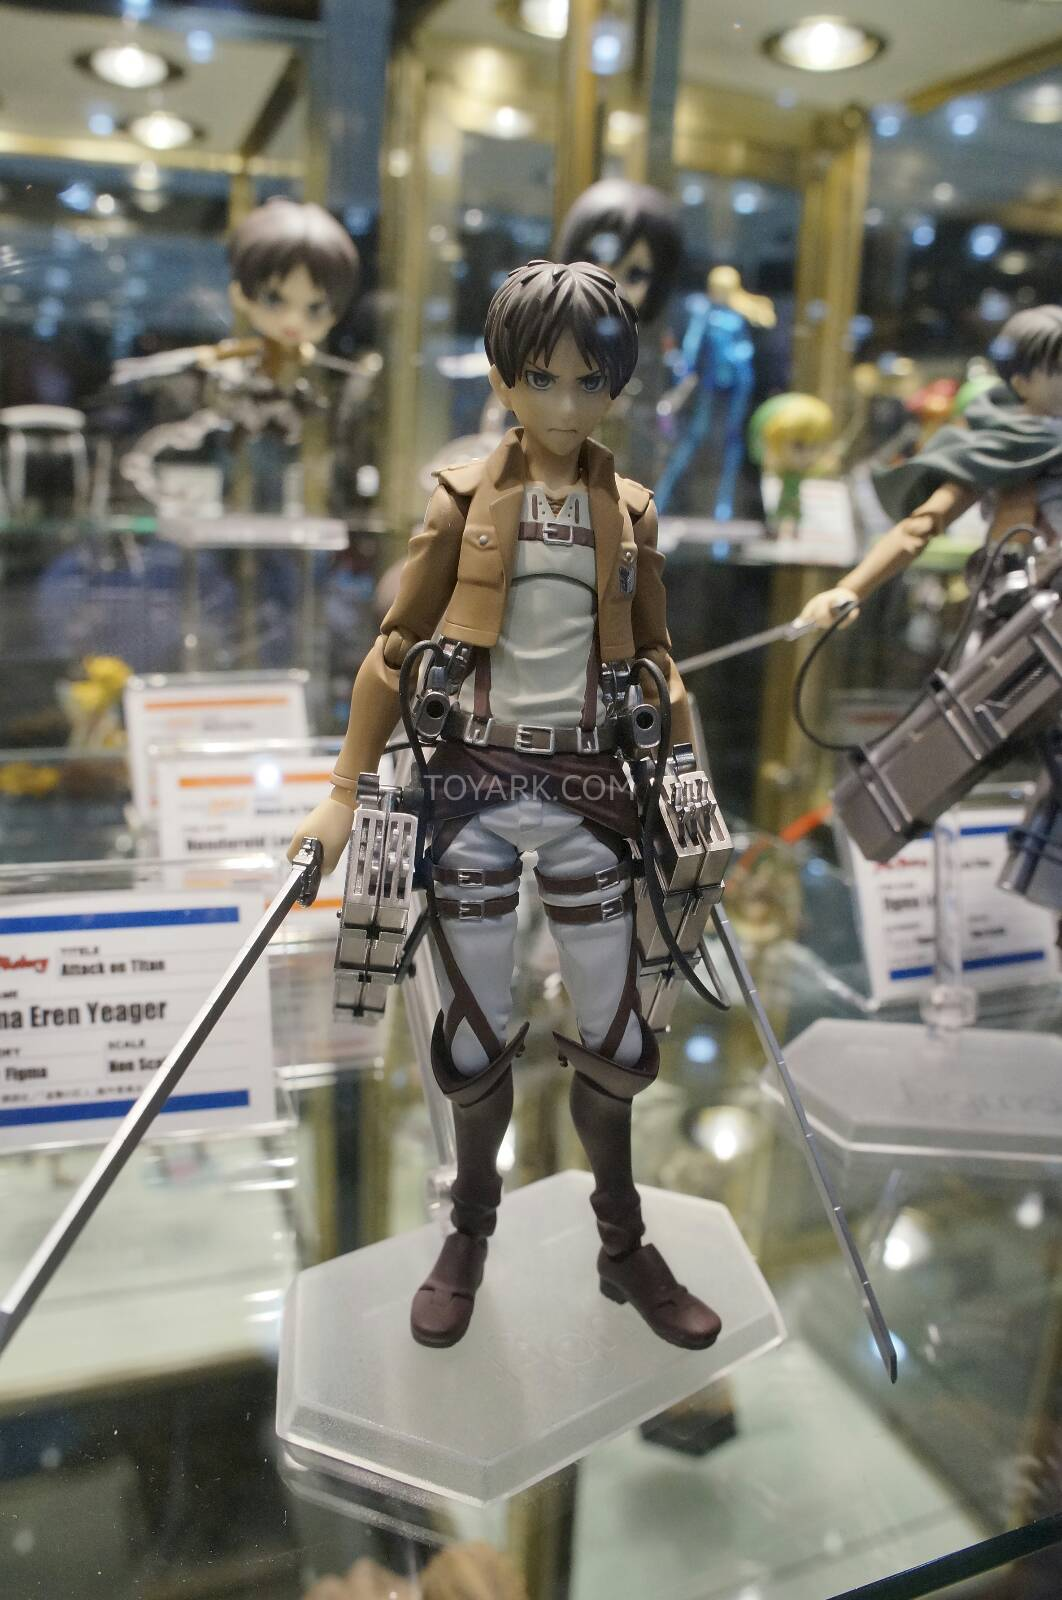 [EVENTO] Toy Fair 2014 - Good Smile Company / Max Factory / Phat Company / FREEing Toy-Fair-2014-Good-Smile-and-Max-Factory-Display-016